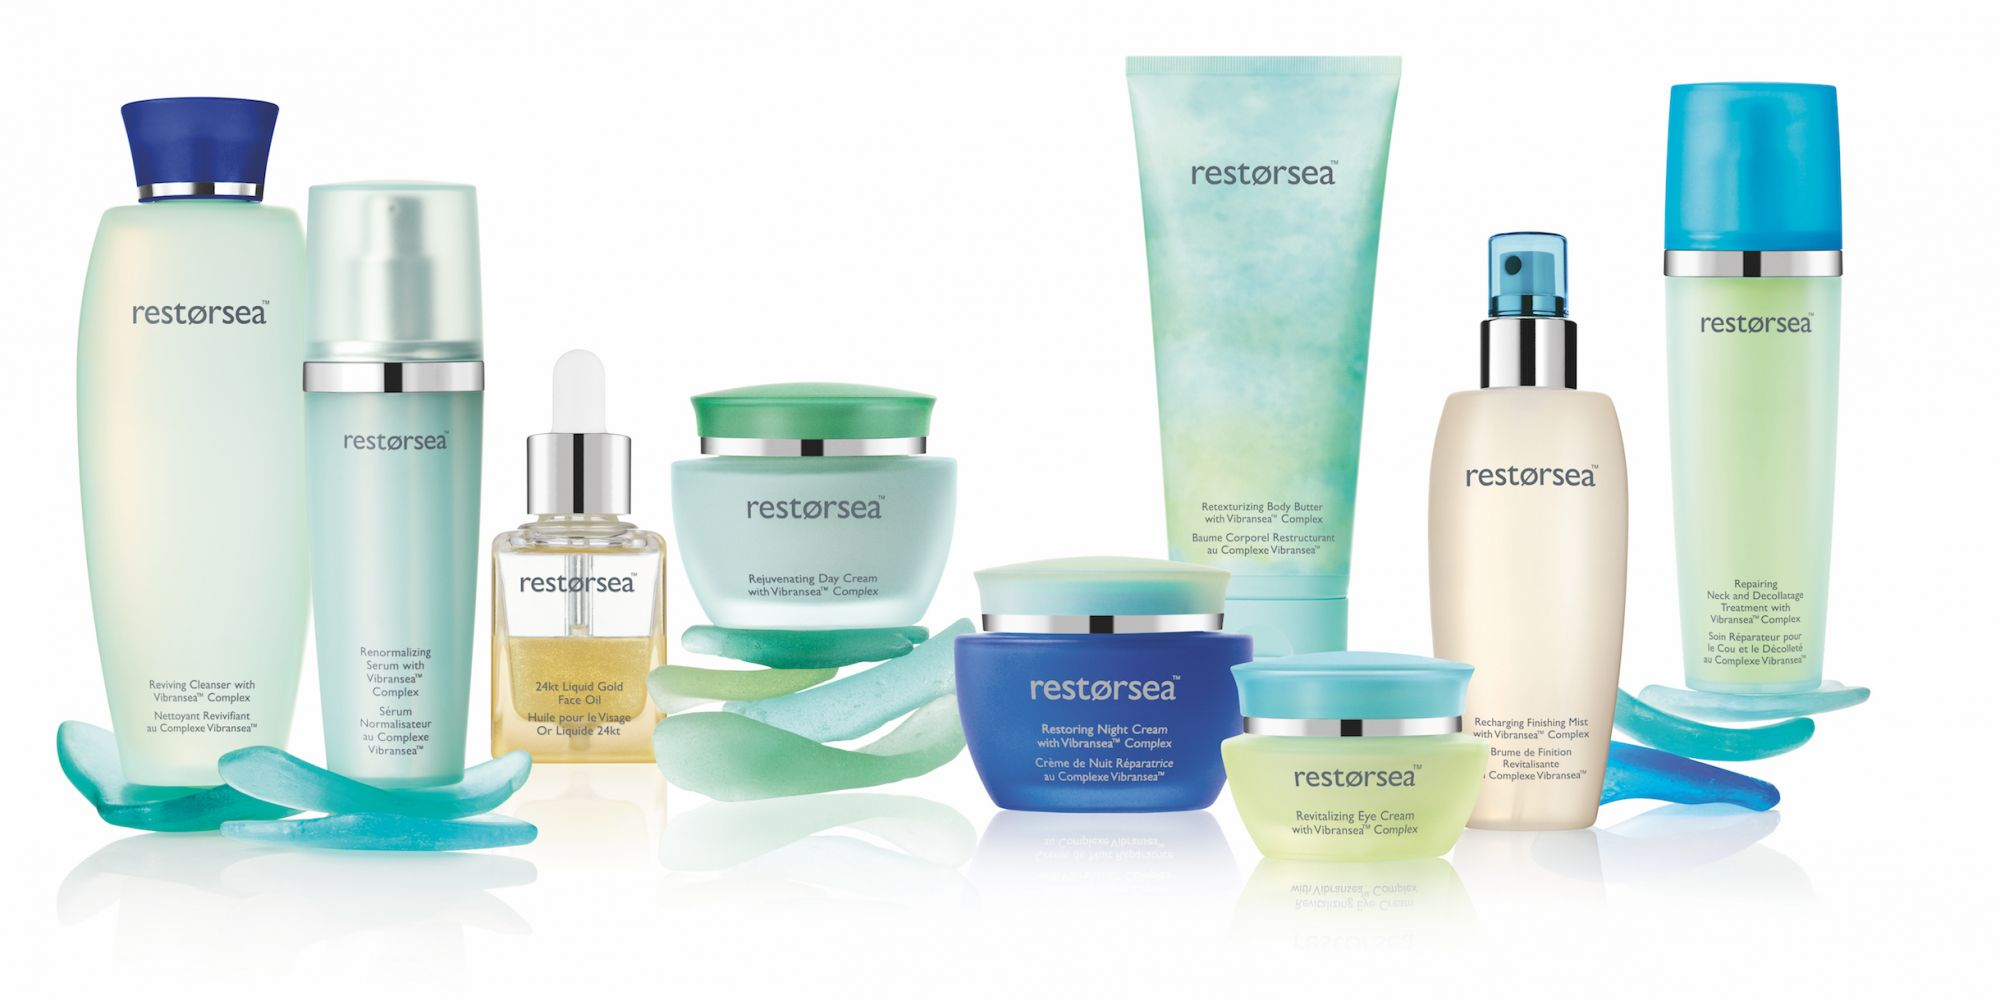 With Restorsea And Restorsea Pro, Patti Pao Offers Clean Skincare Backed By Science